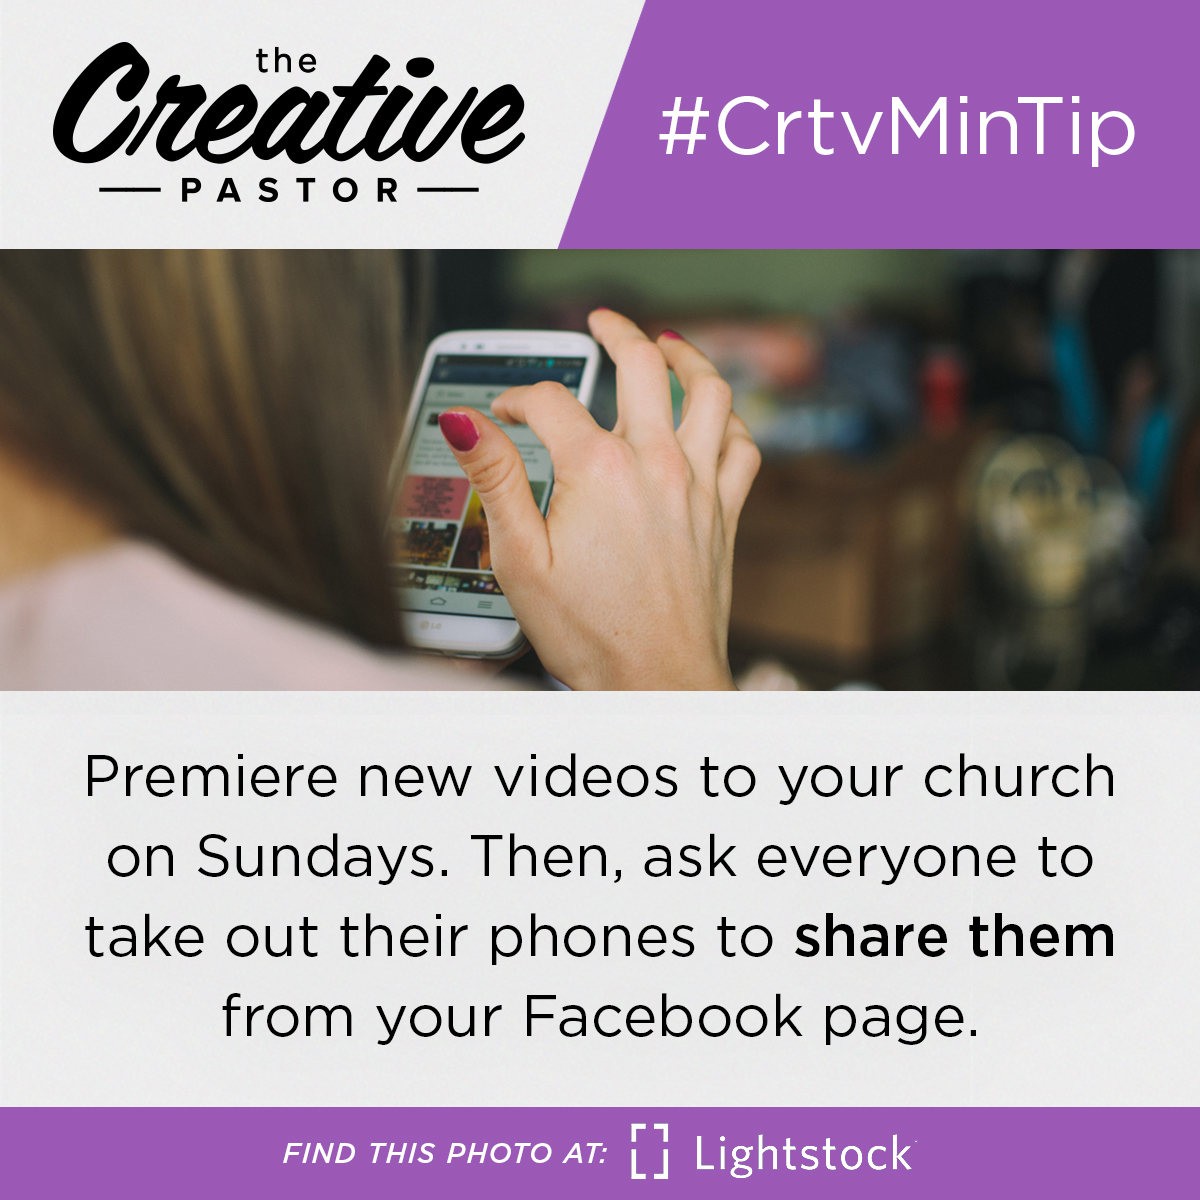 #CrtvMinTip: Premiere new videos to your church on Sundays. Then, ask everyone to take out their phones to share them from your Facebook page.